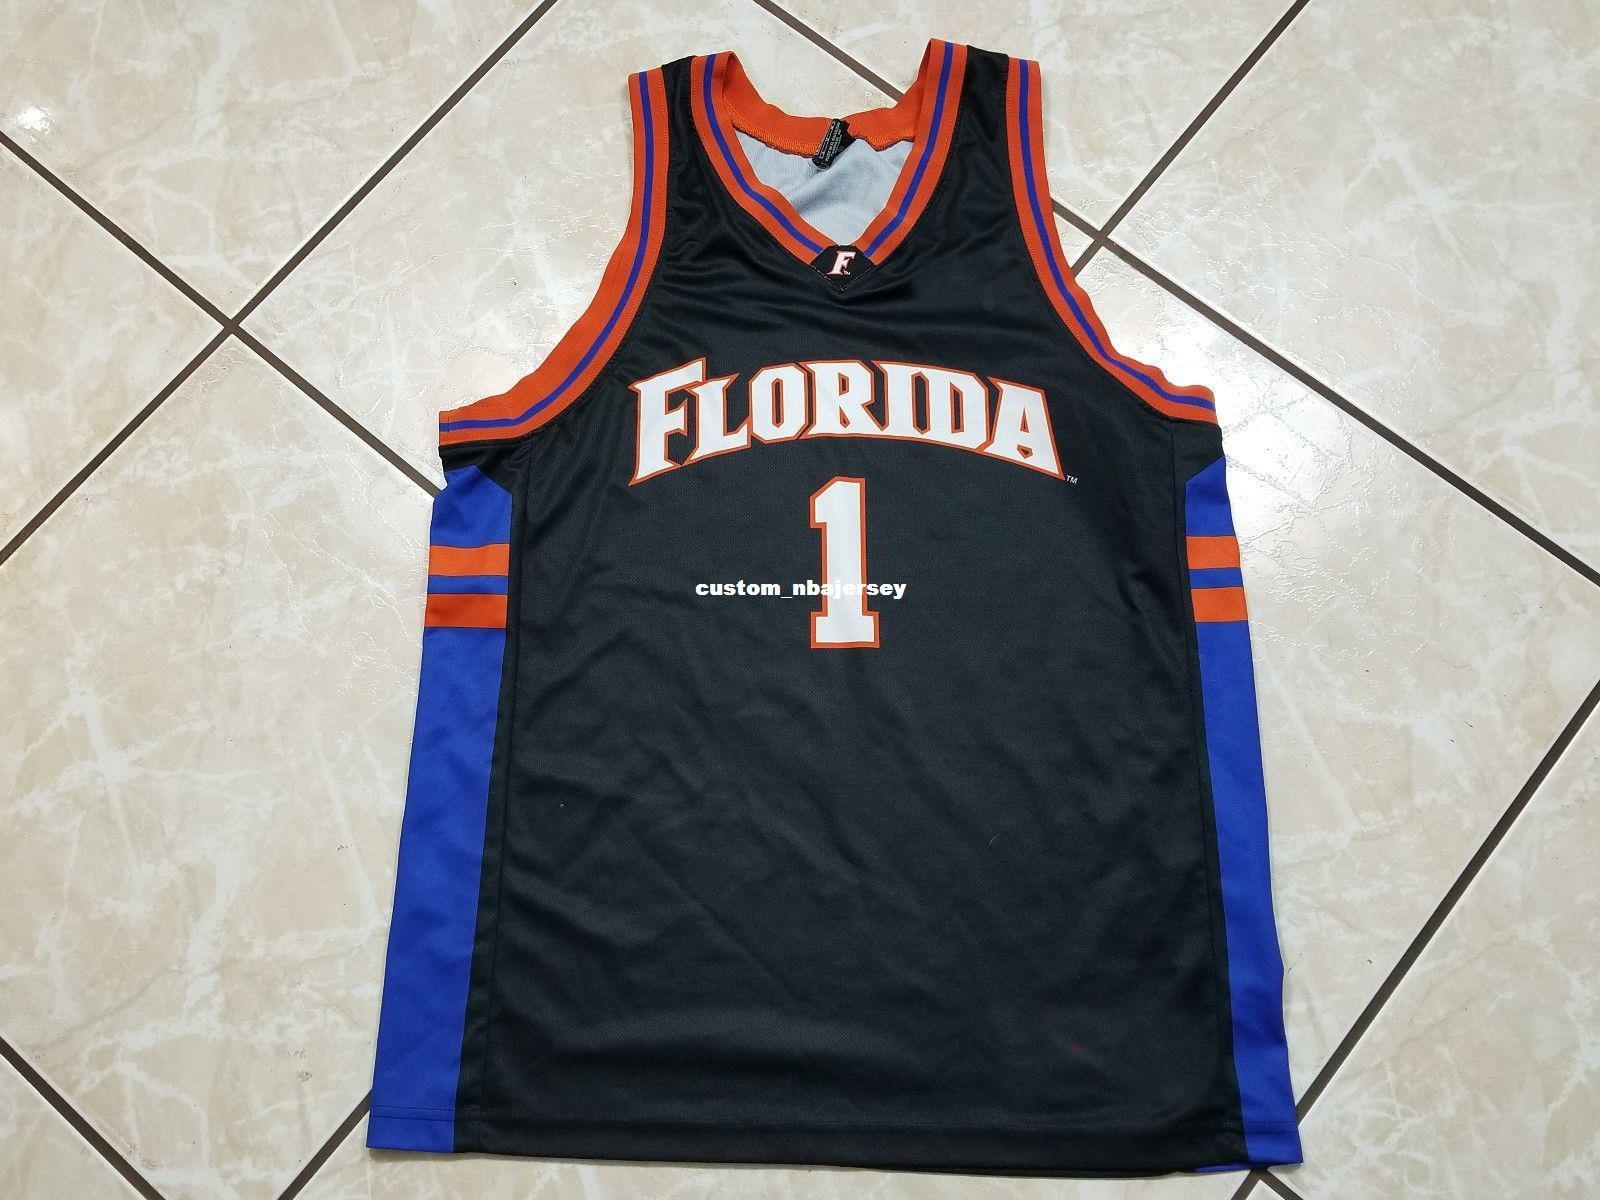 2aba7f1f9 2019 Cheap Custom Vintage FLORIDA GATORS Basketball Jersey Black Stitched  Customize Any Number Name MEN WOMEN YOUTH XS 5XL From Custom_nbajersey, ...